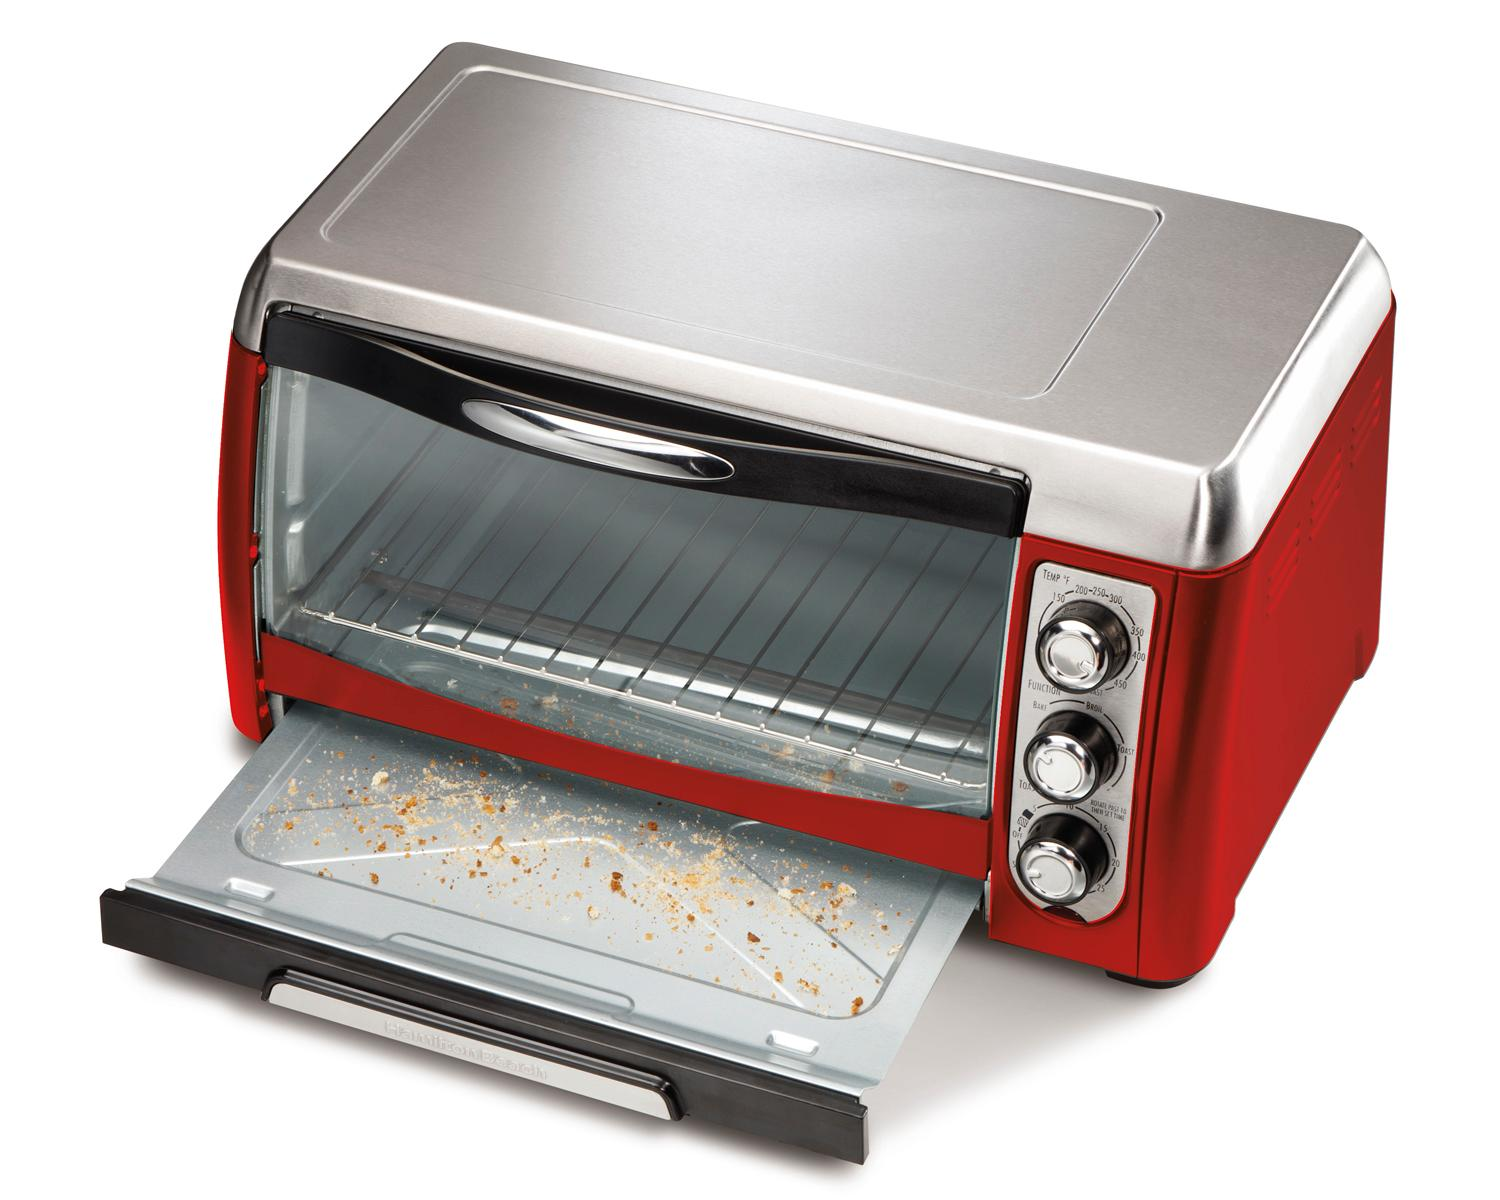 Countertop Oven Red : ... Beach 31335 Ensemble 6-Slice Toaster Oven, Red: Kitchen & Dining